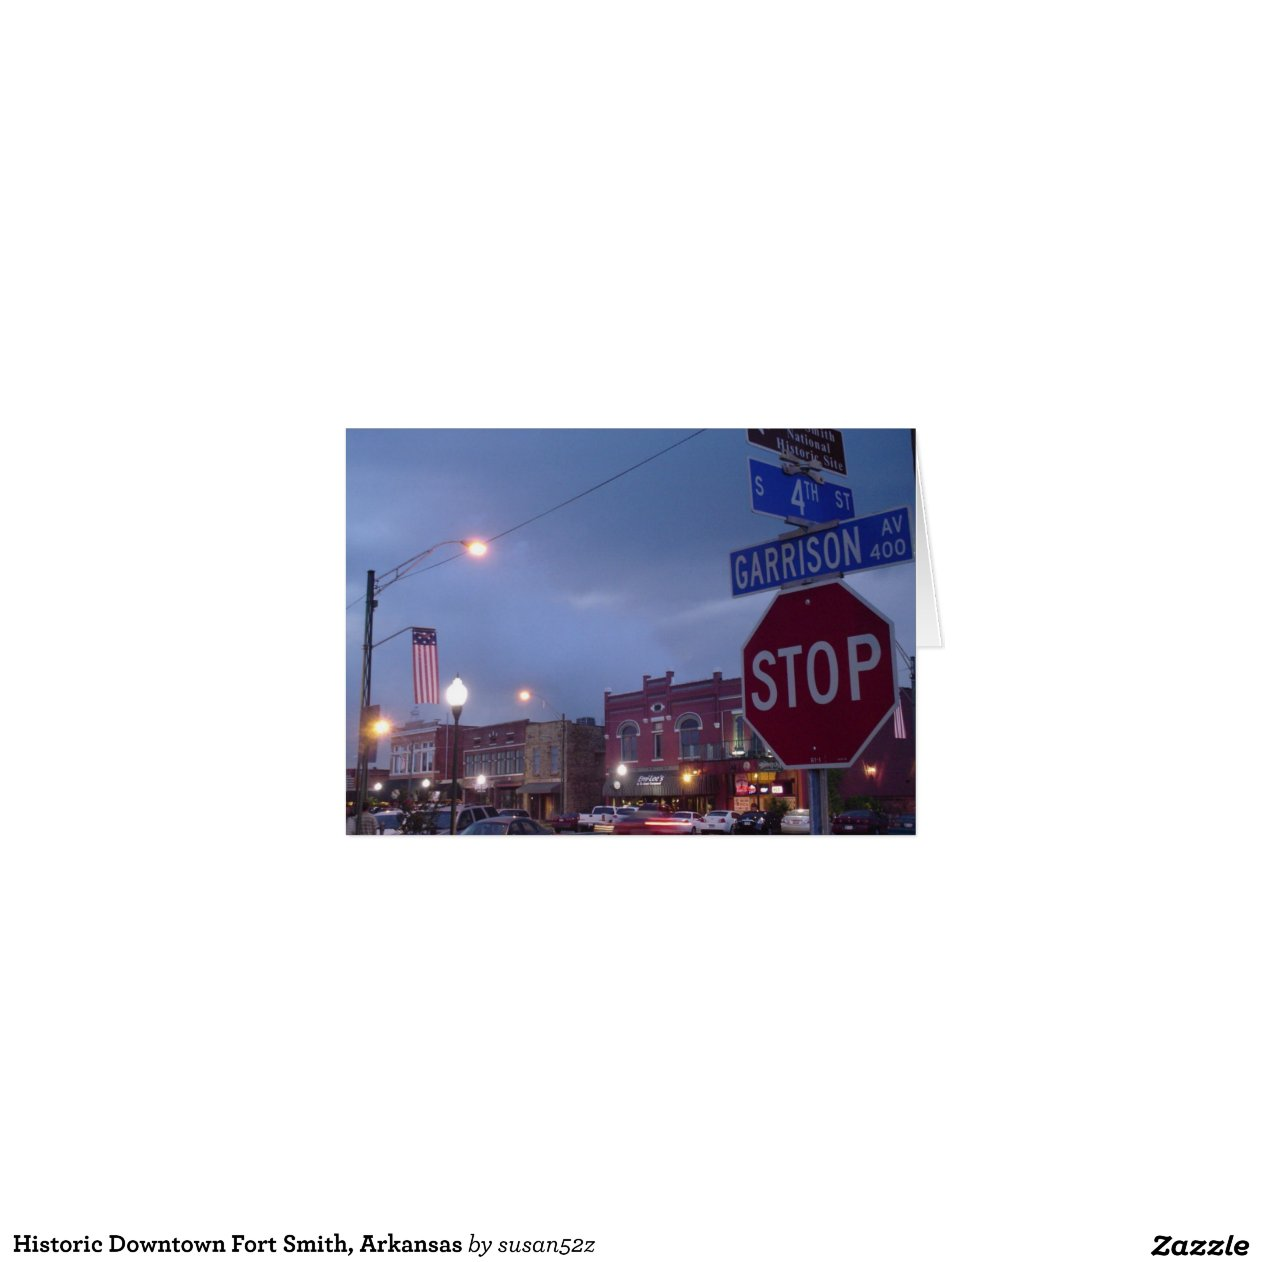 historic downtown fort smith arkansas zazzle